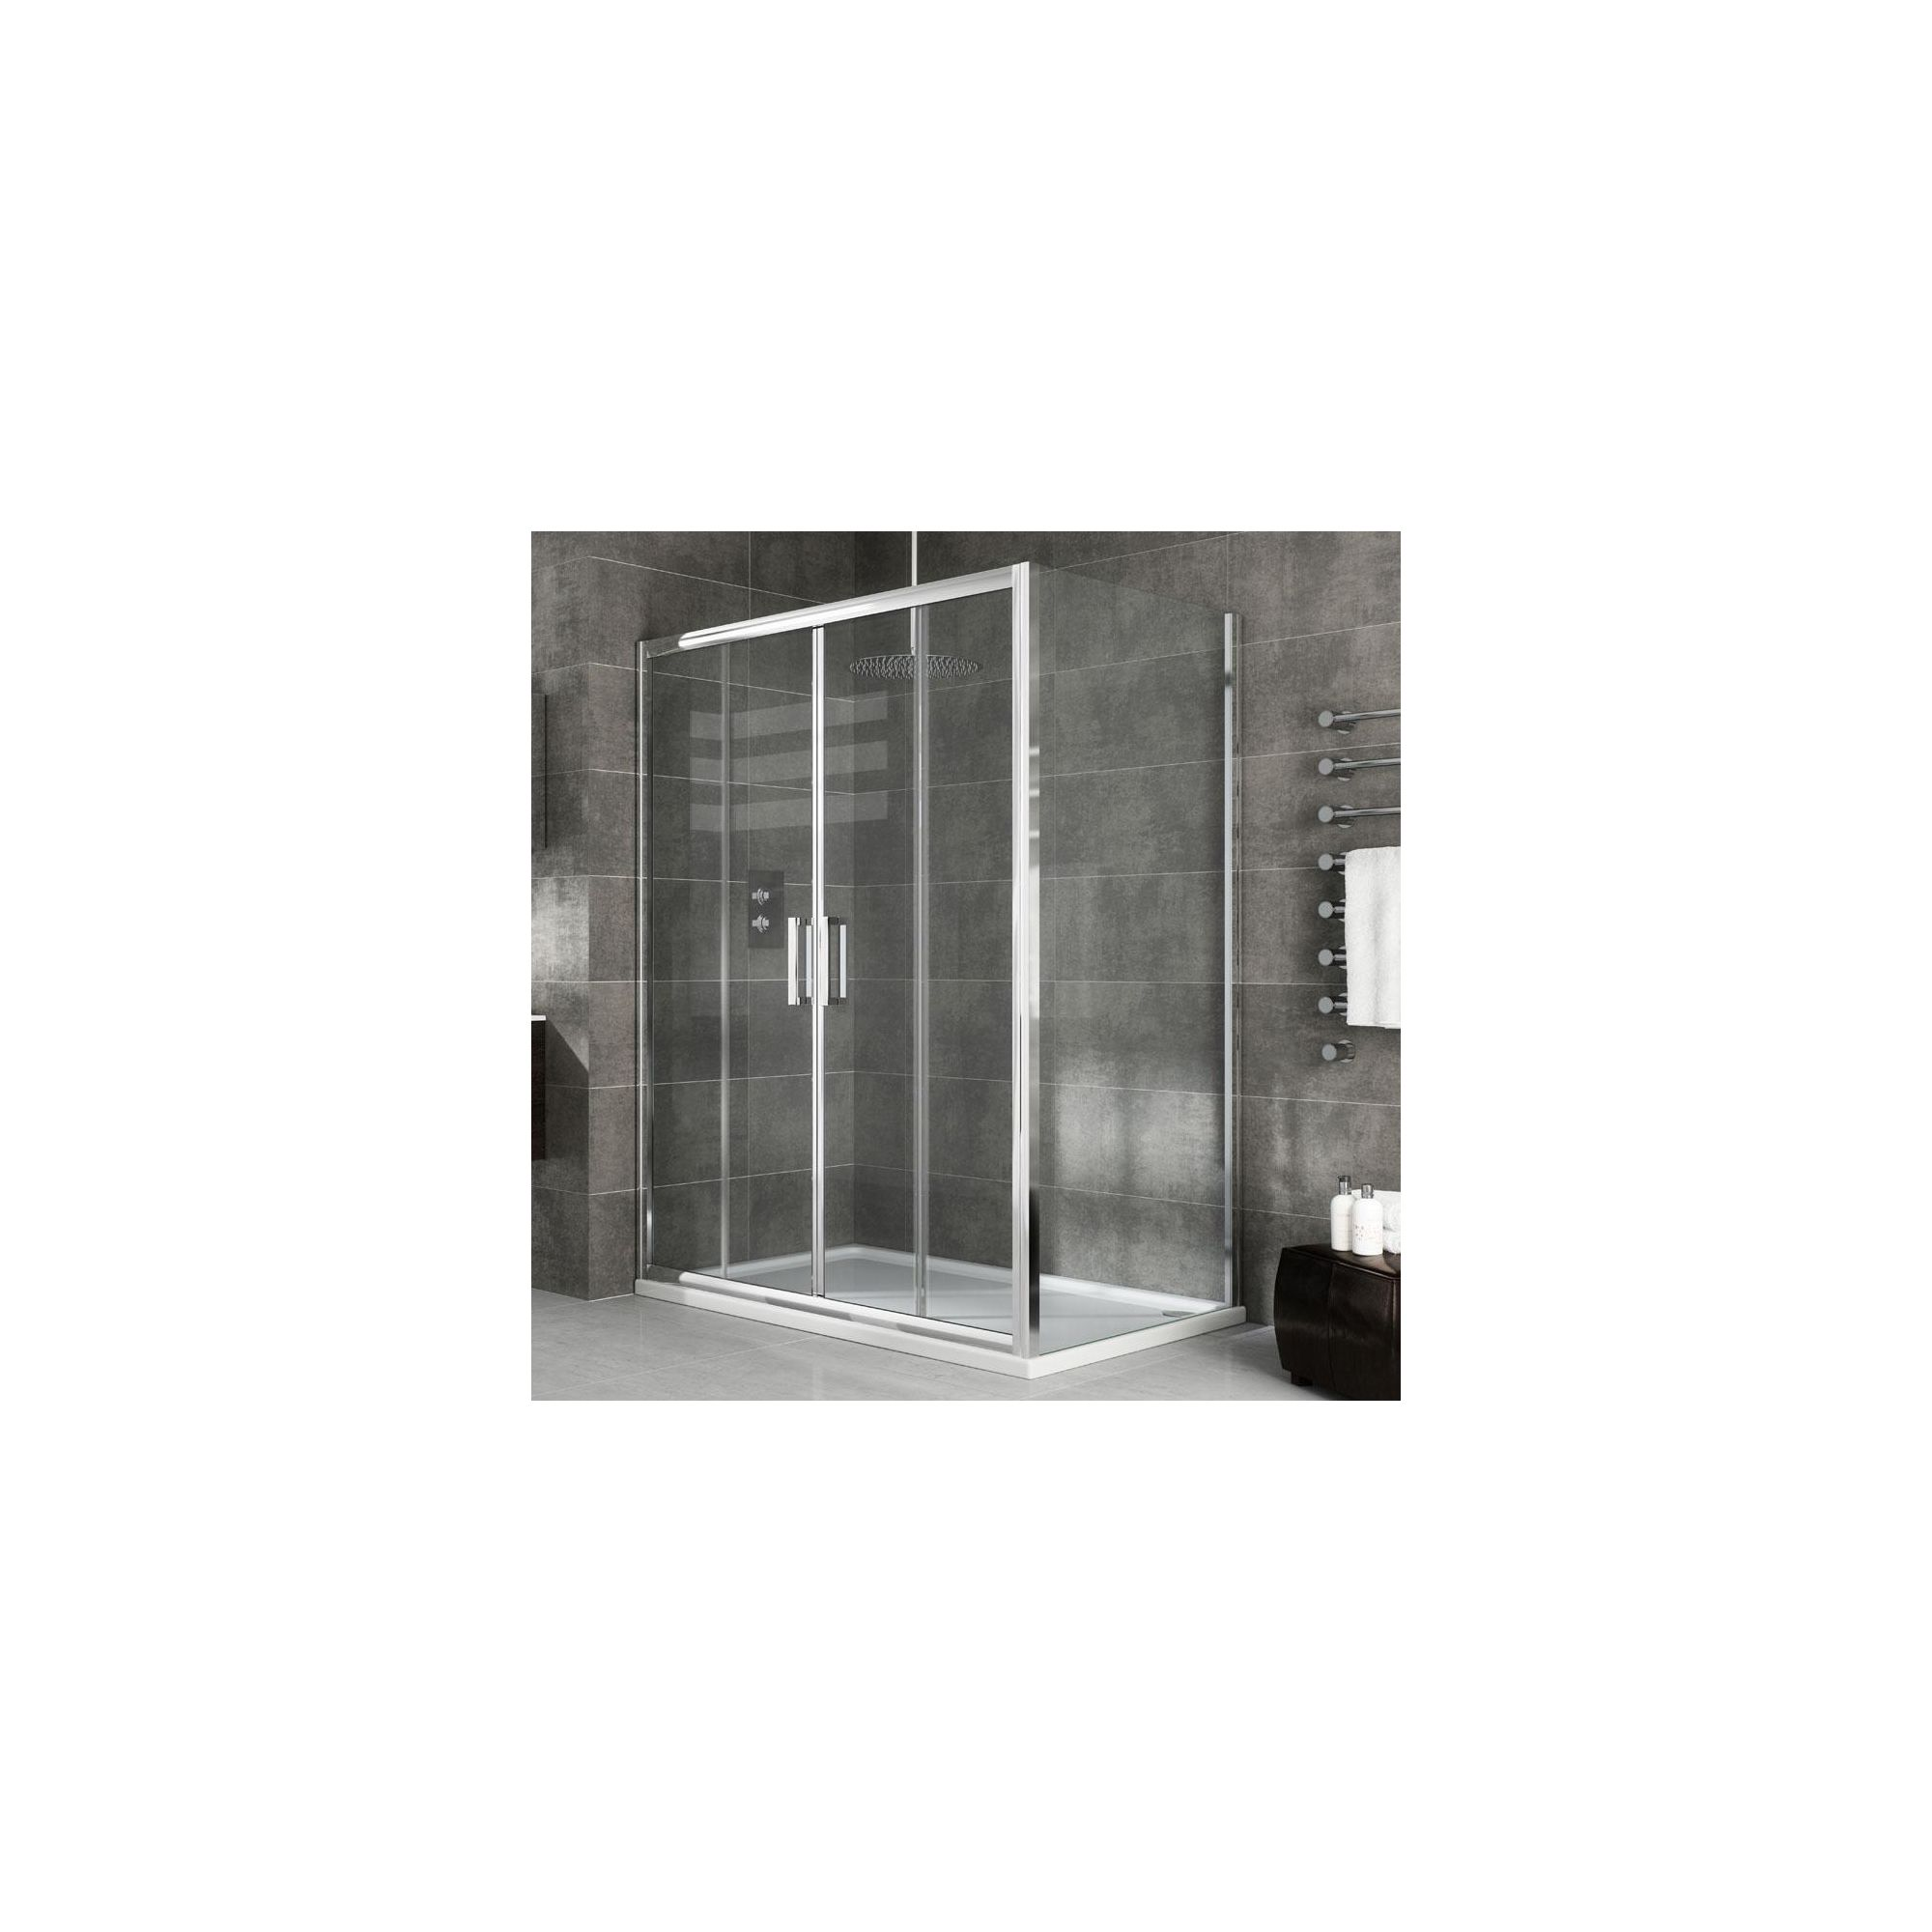 Elemis Eternity Four-Panel Jumbo Sliding Shower Door, 1600mm Wide, 8mm Glass at Tesco Direct